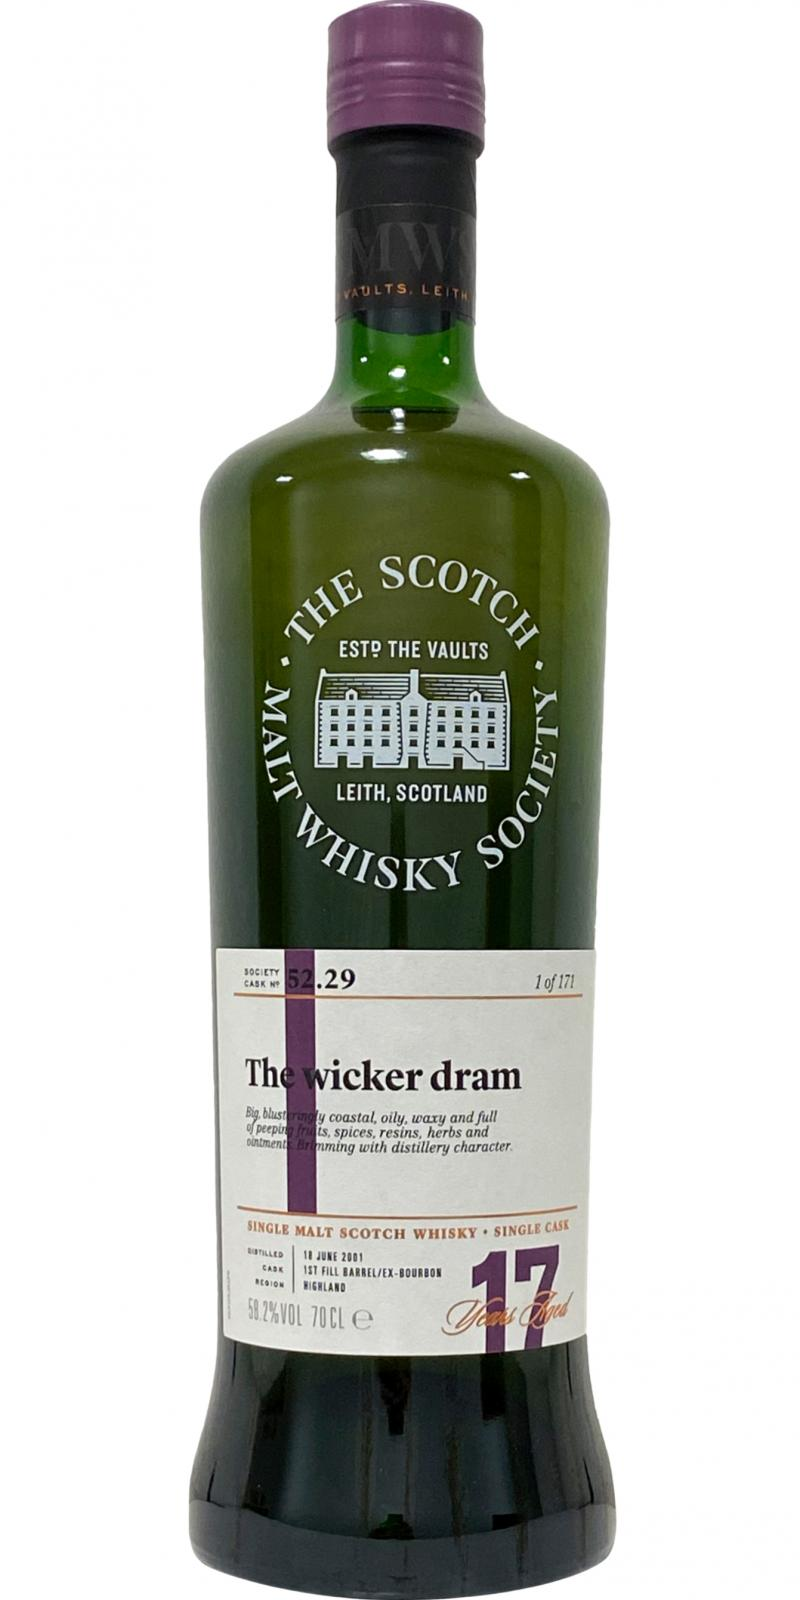 Old Pulteney 2001 SMWS 52.29